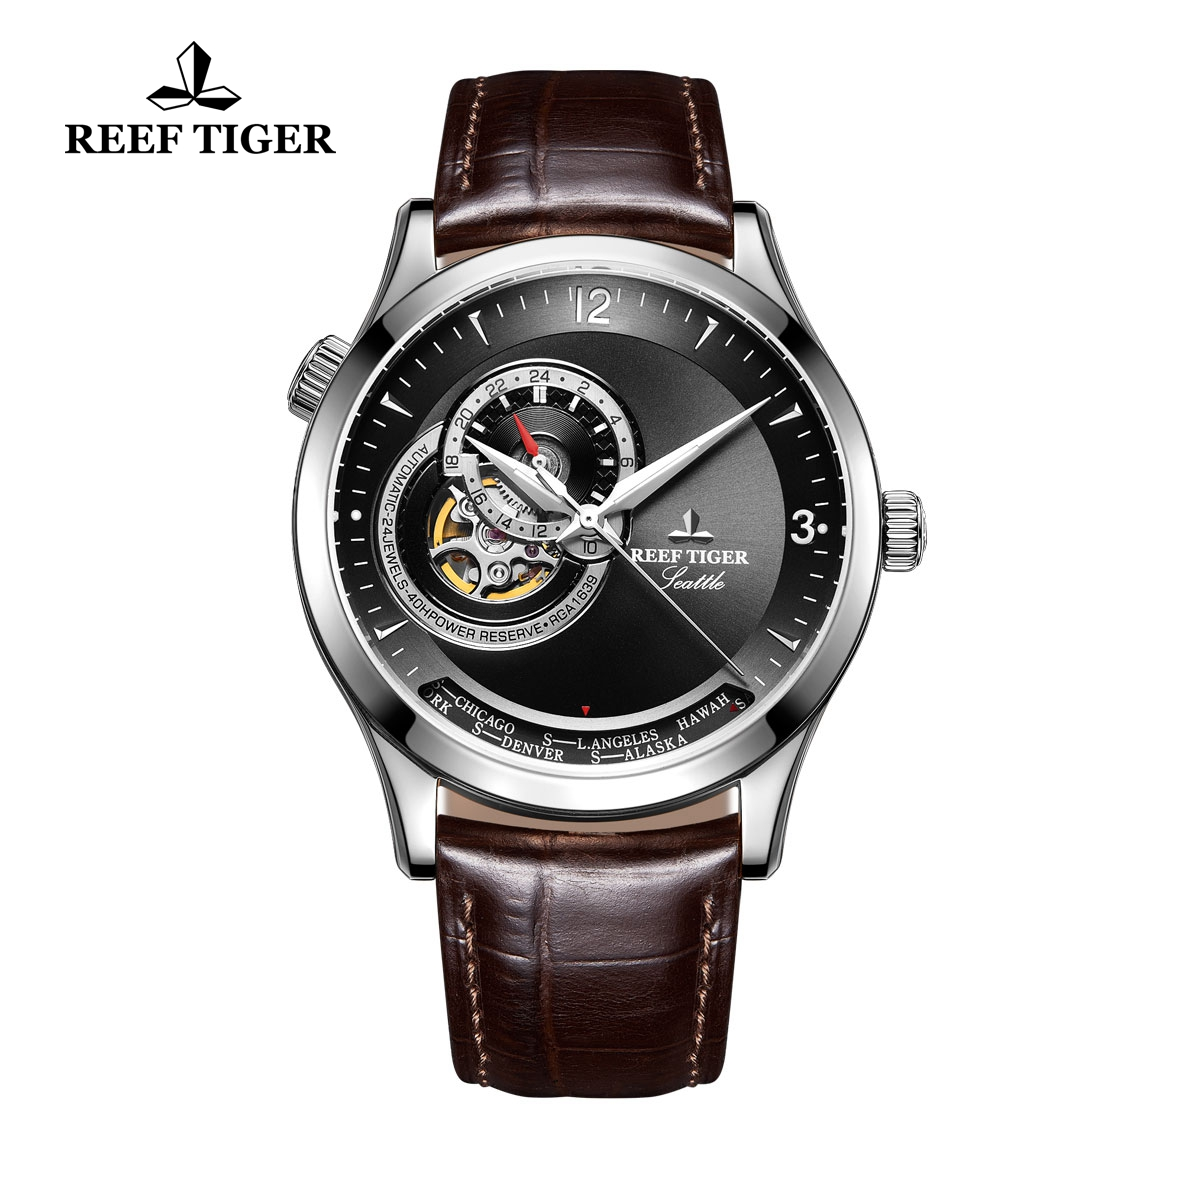 Reef Tiger Seattle Sailing Brown Leather Watch With Tourbillon Steel Automatic Watch RGA1693-YBS